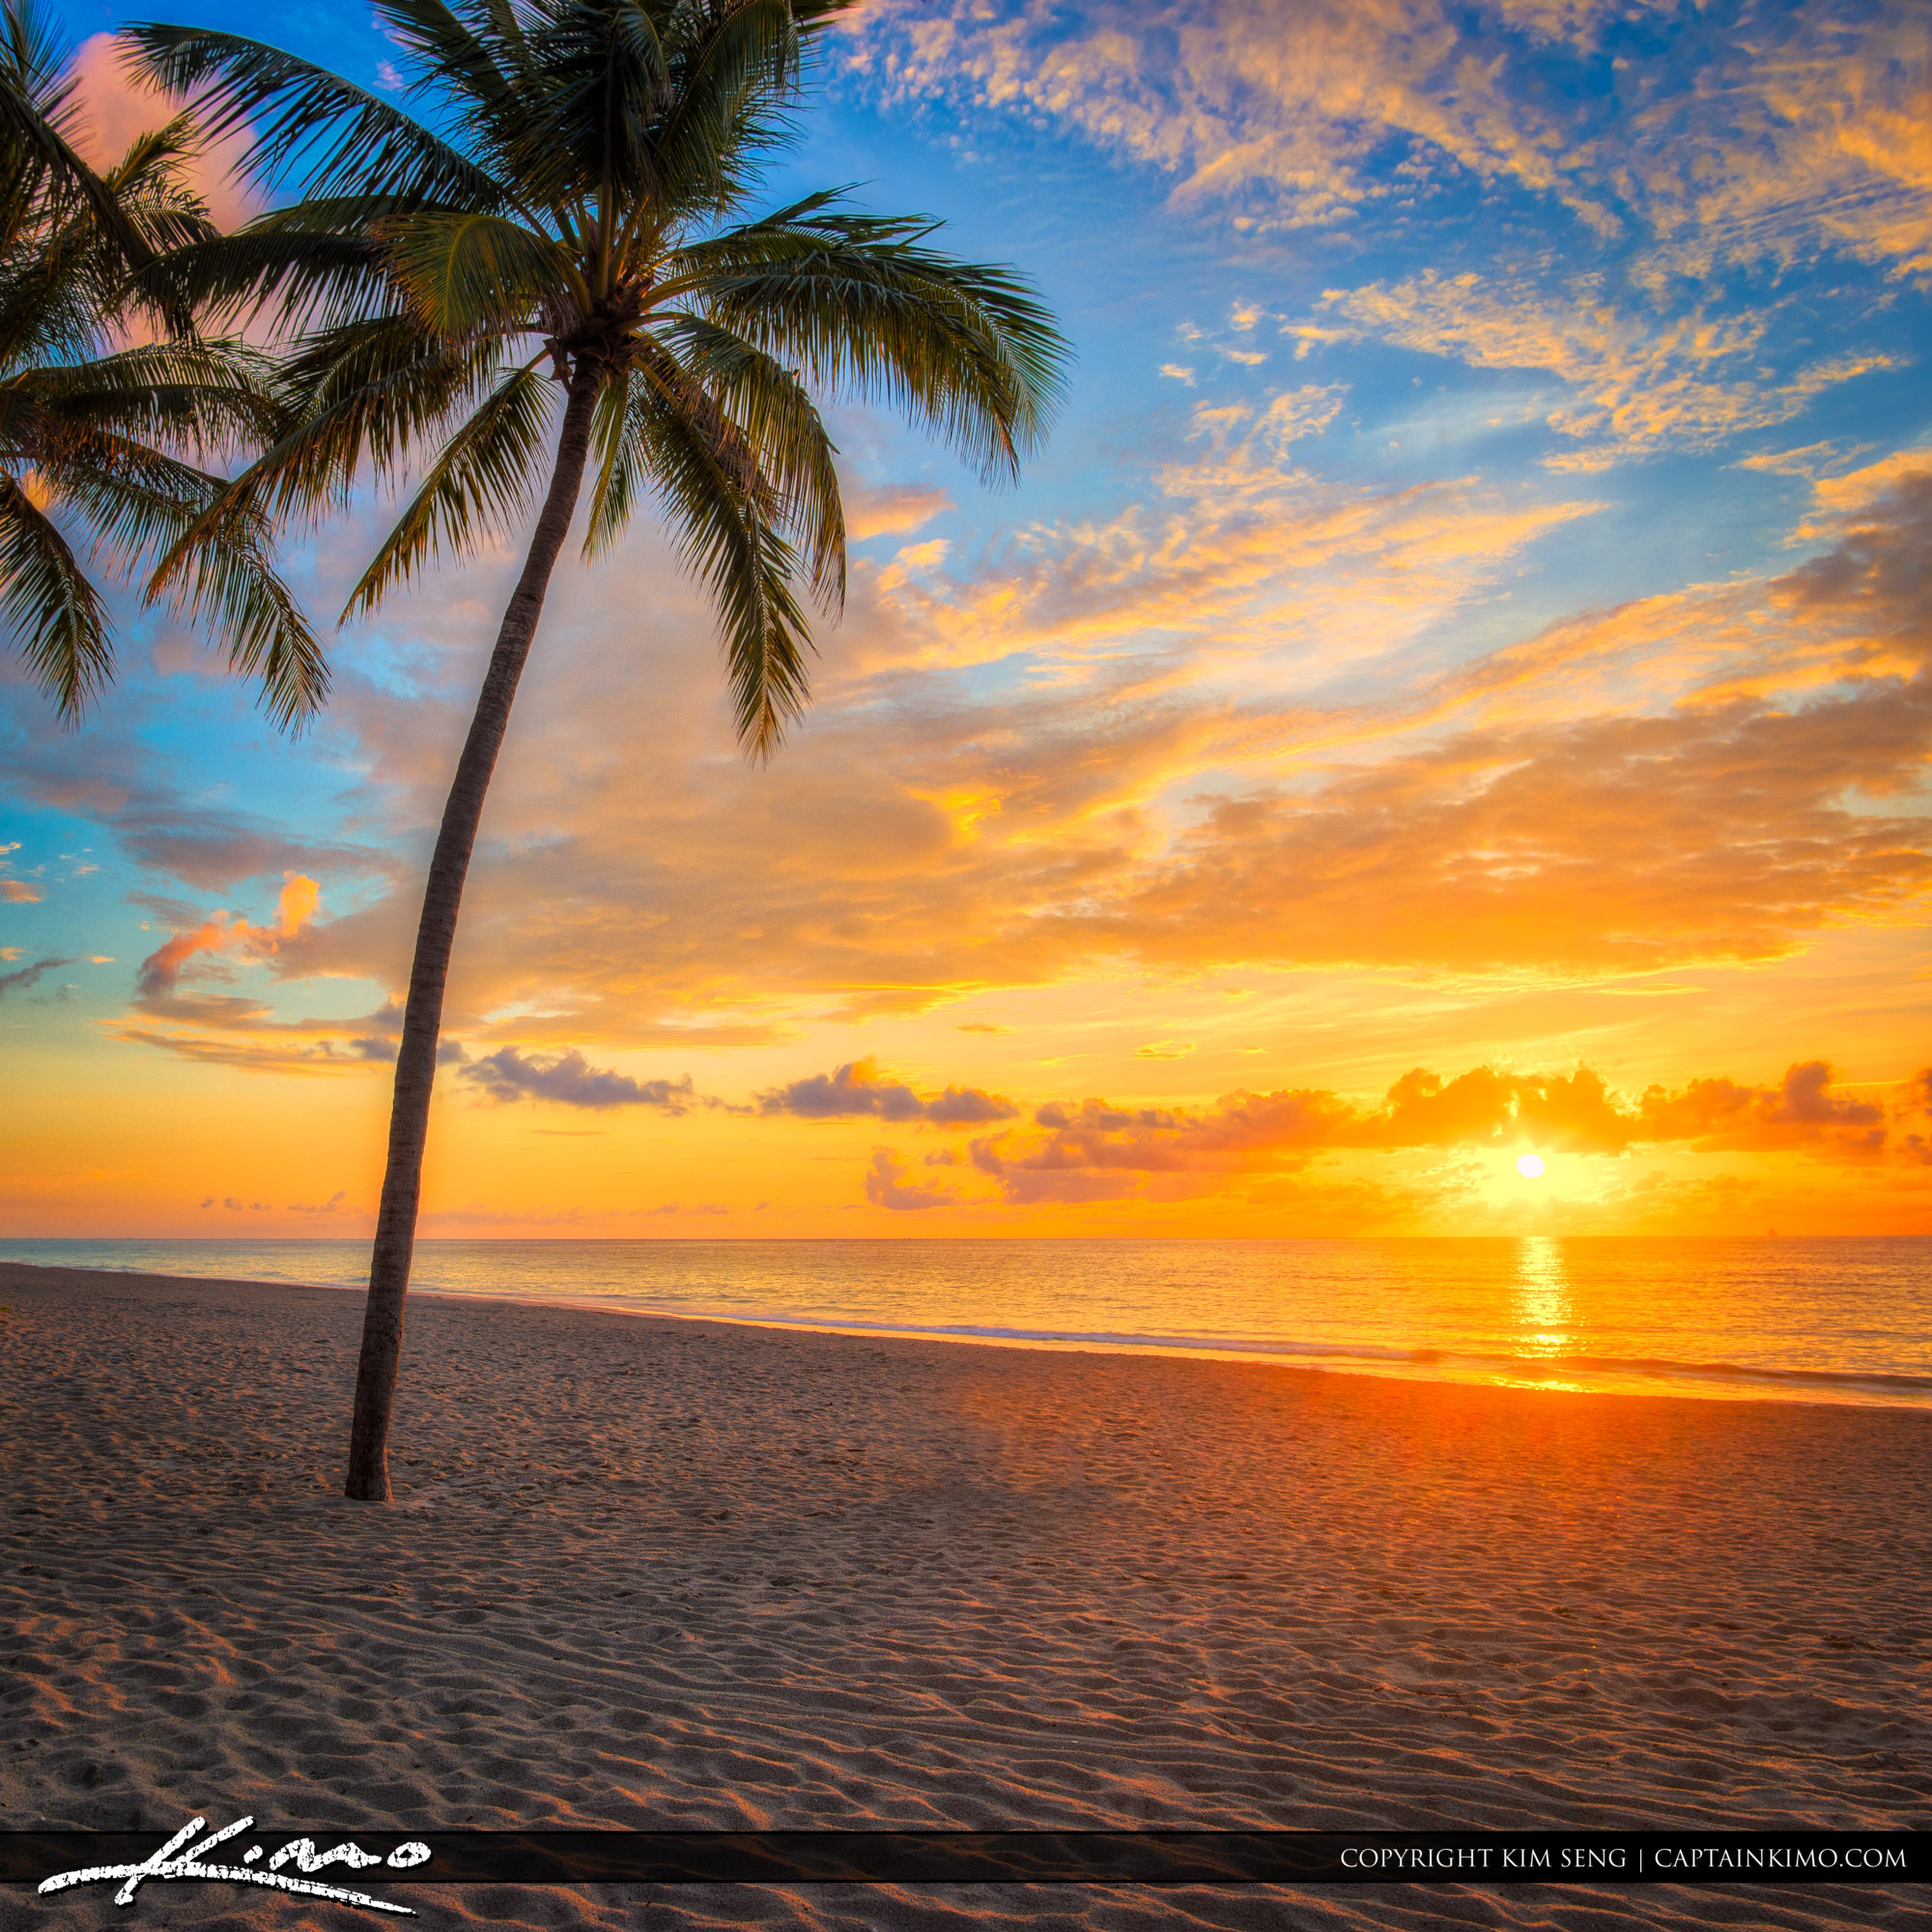 Hollywood Beach Sunrise Coconut Tree on Beach with Blast of Colo